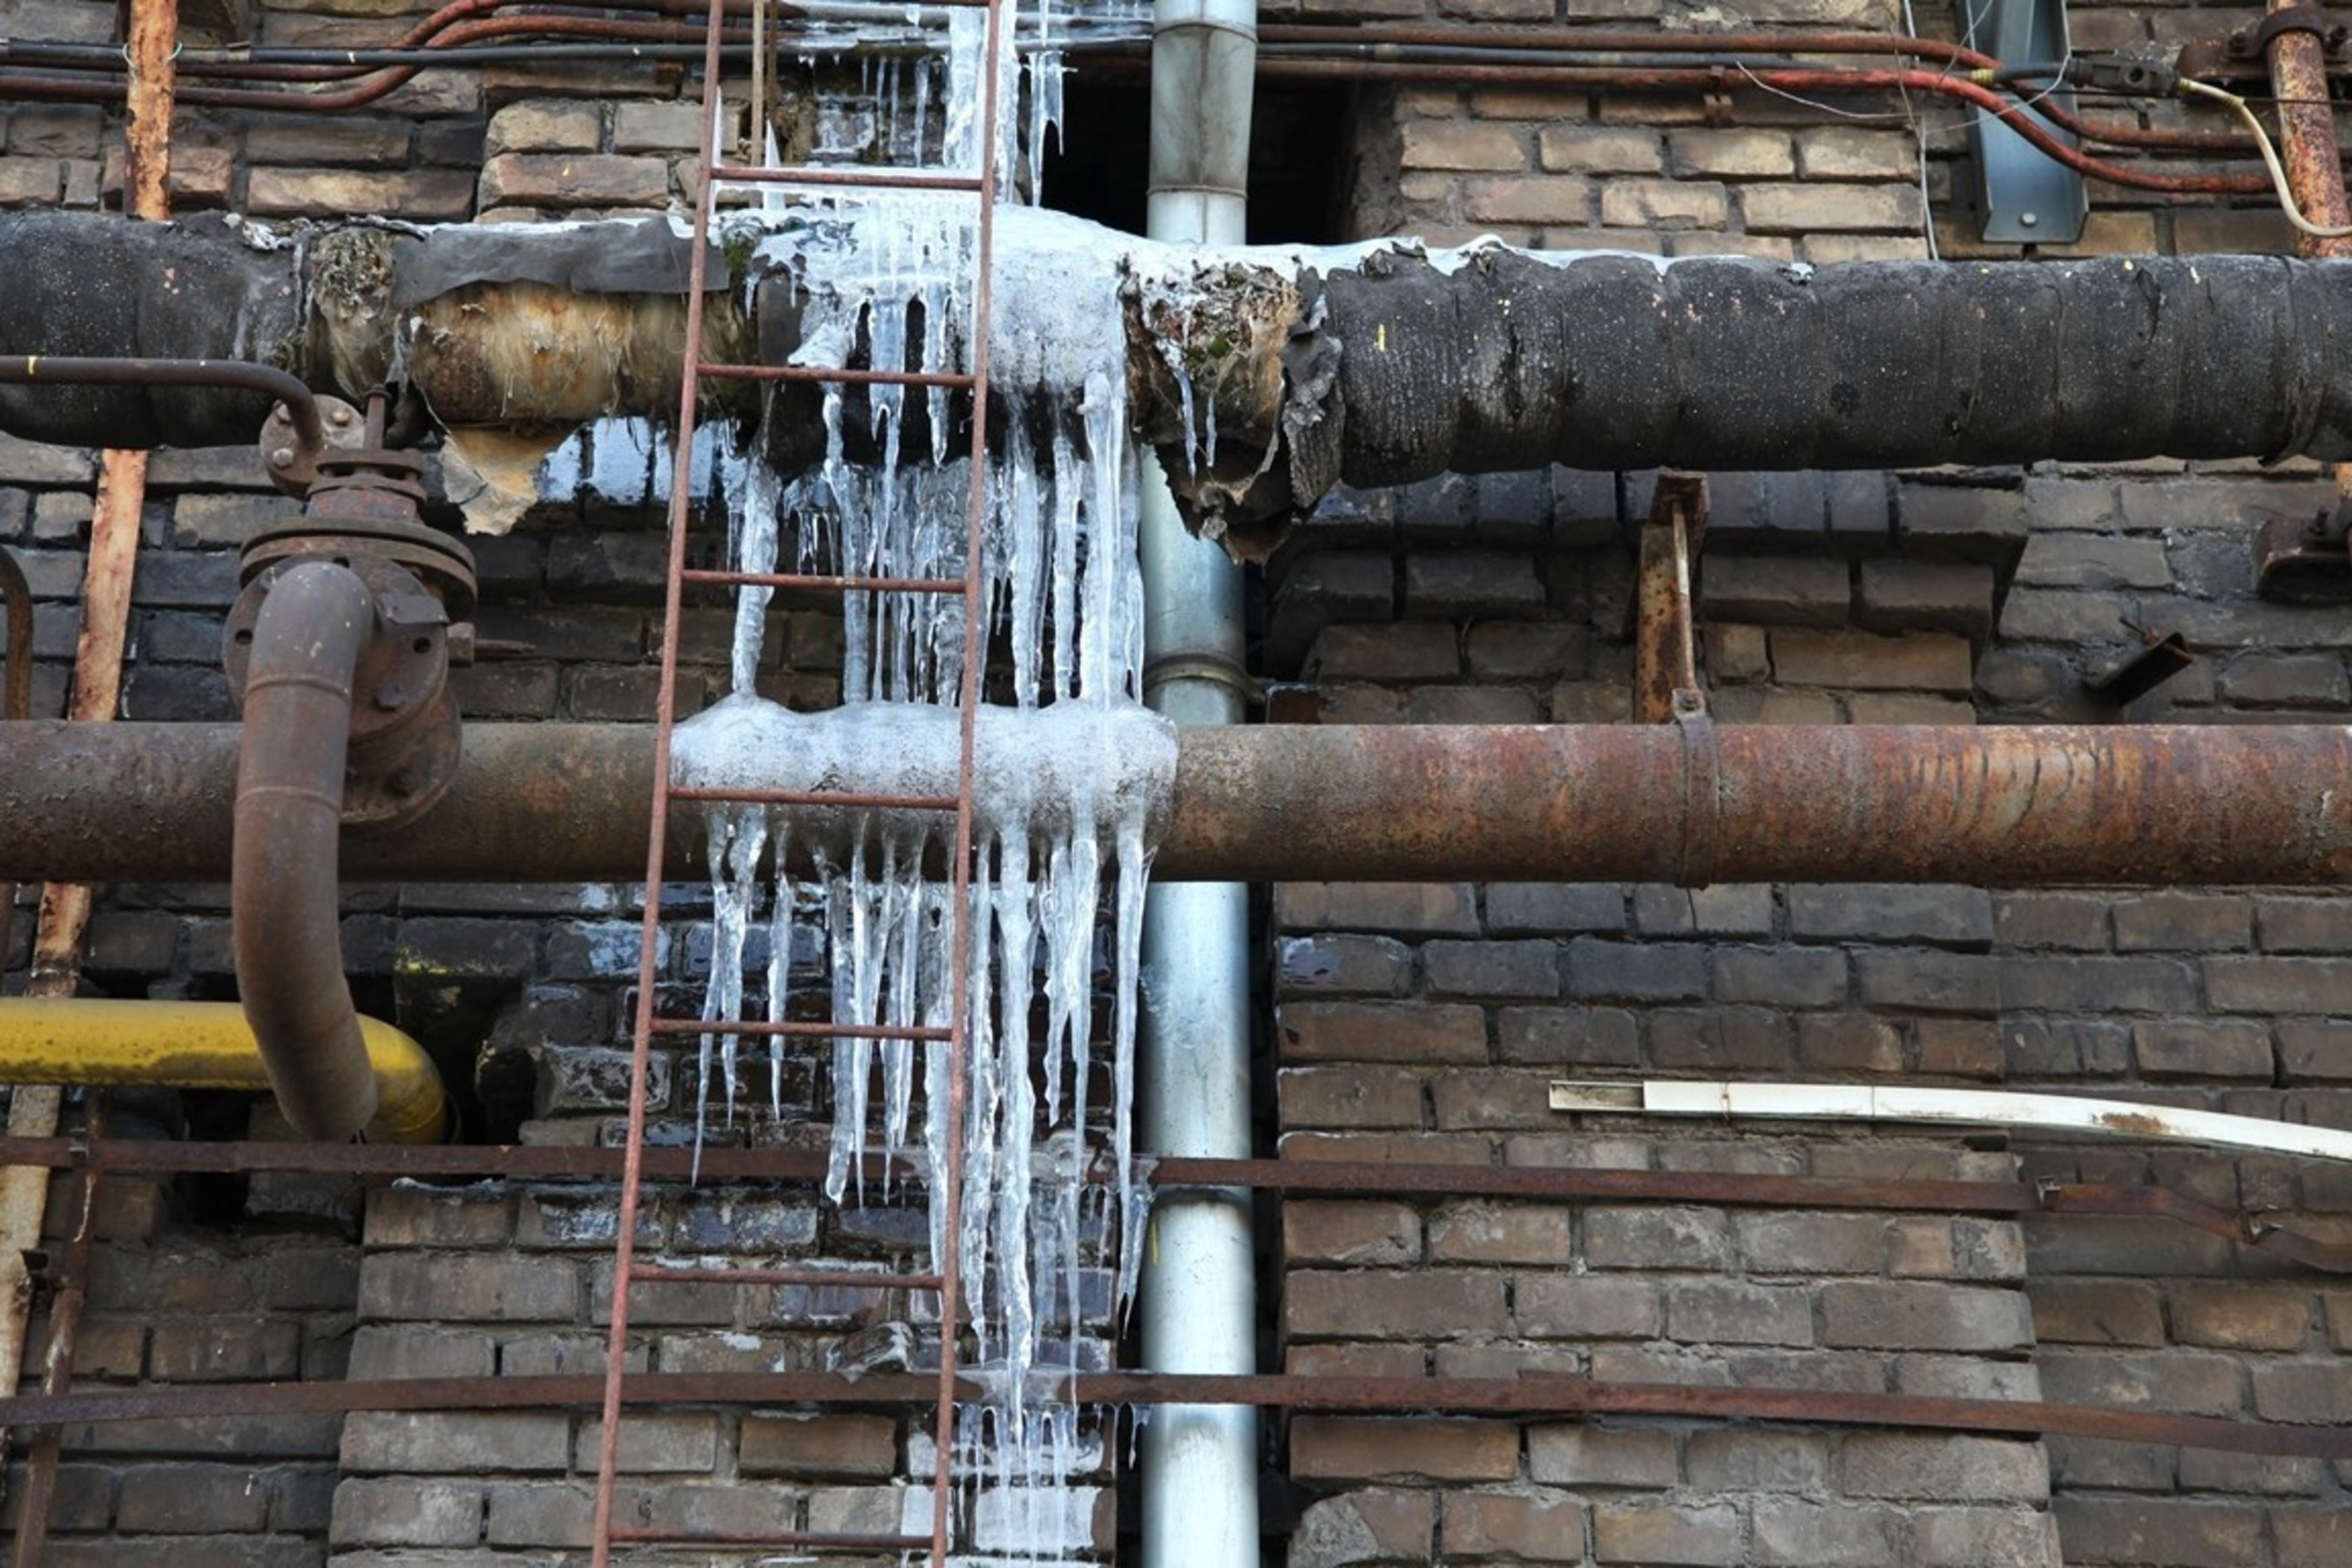 Winter Freeze: Petri Plumbing Offers Advice to Avoid Frozen Pipes